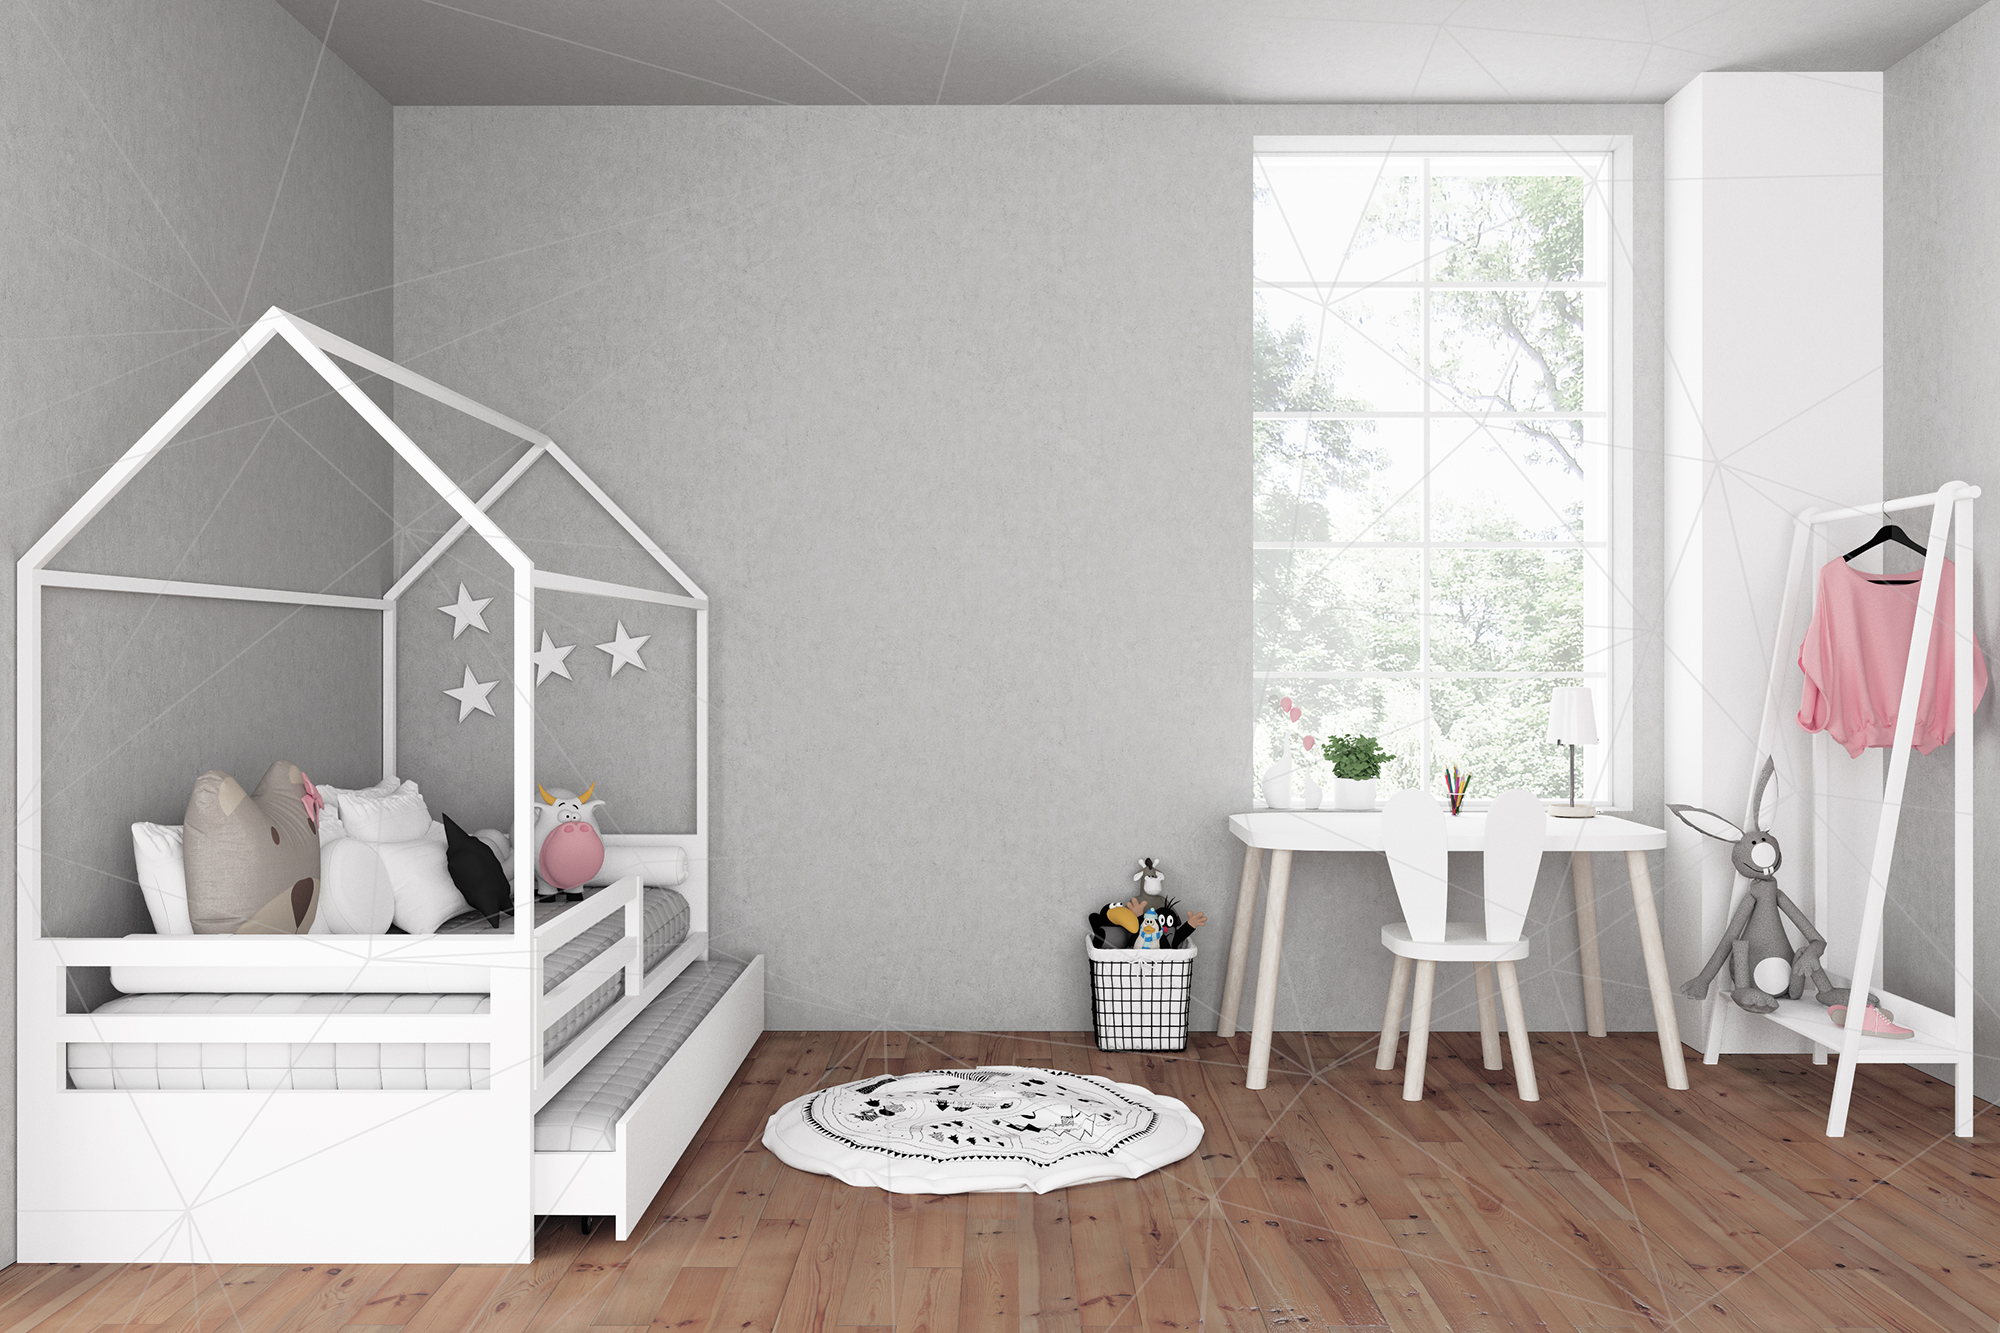 Nursery interior bundle - 10 images 60 off example image 8